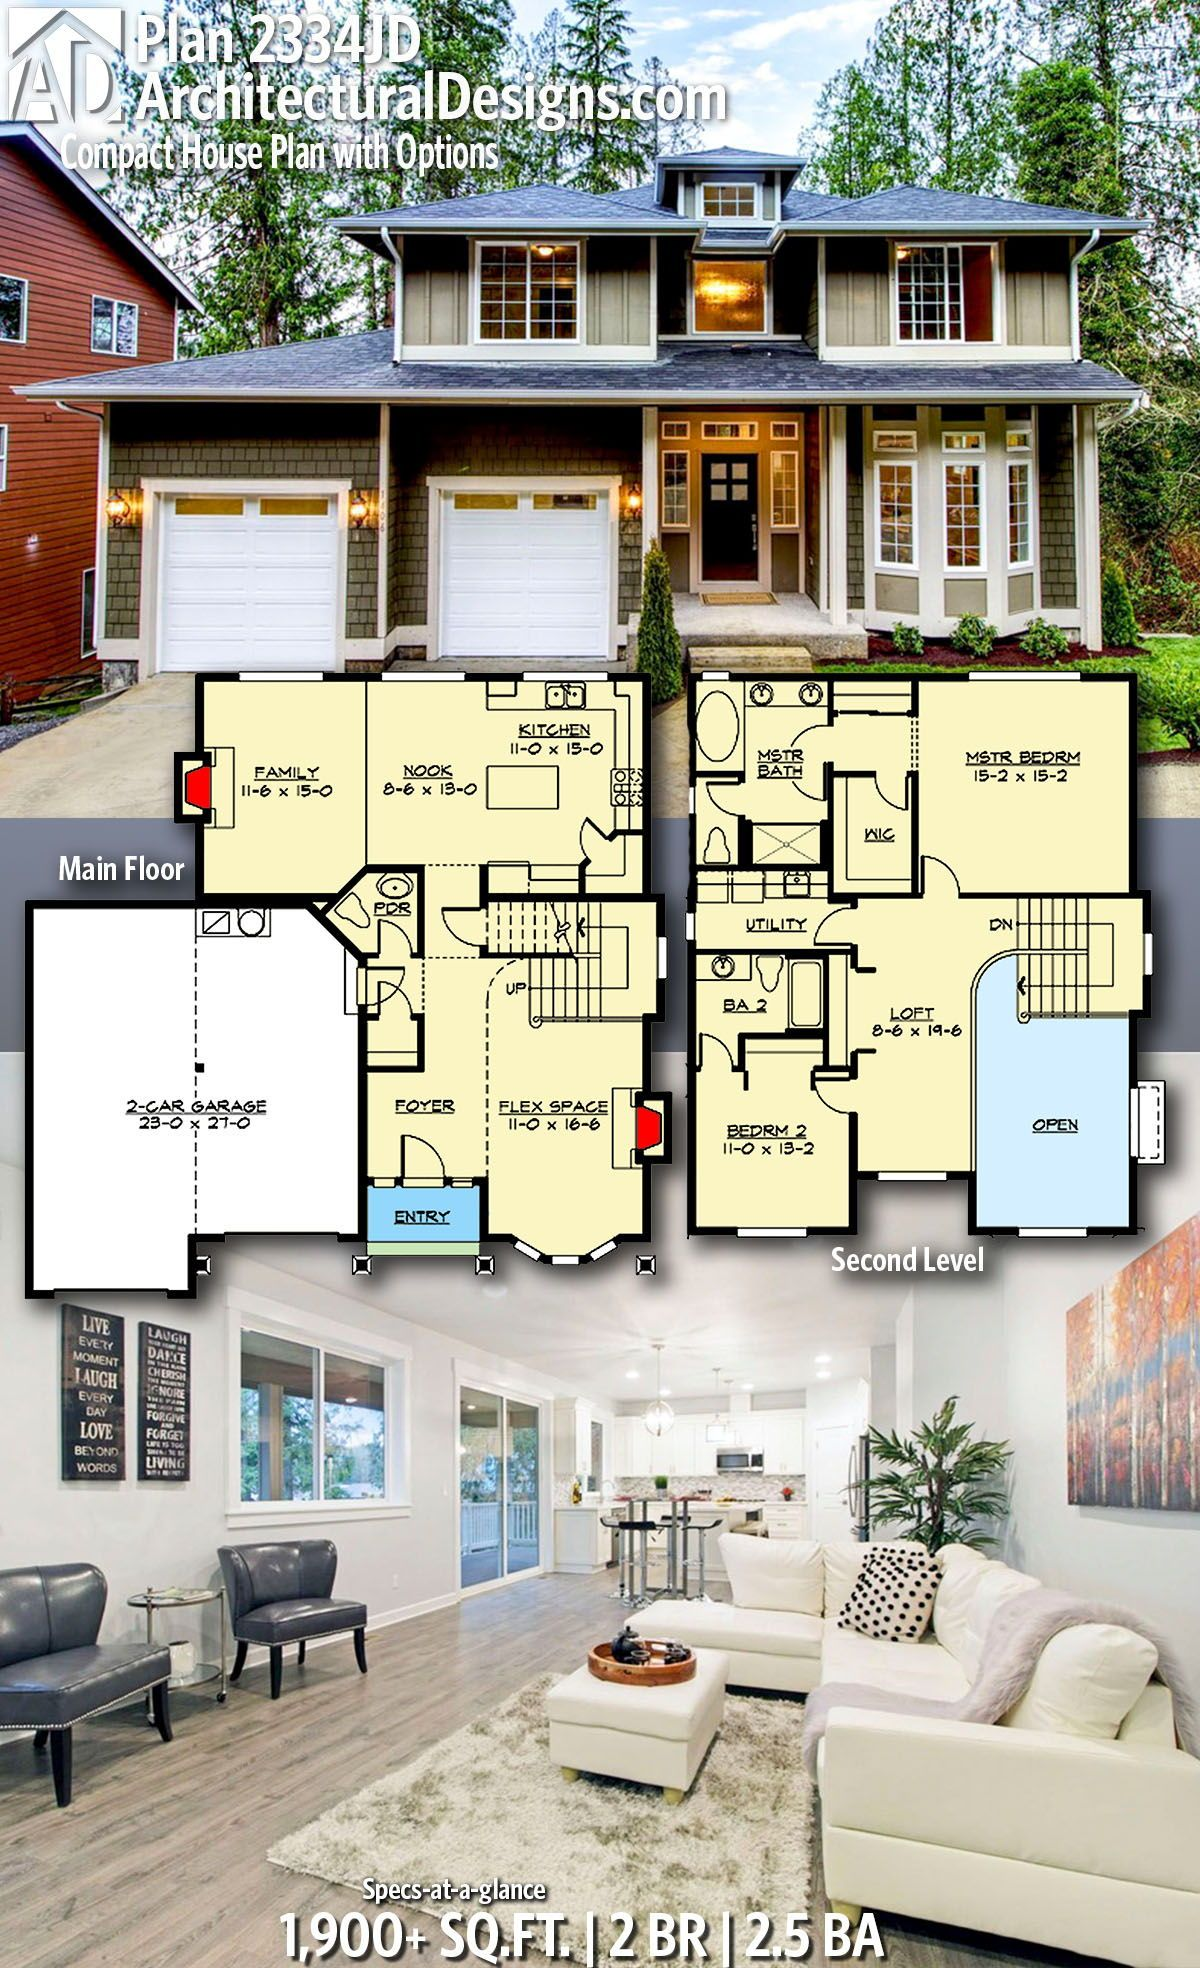 Plan 2334jd Compact House Plan With Options House Plans House Plans Mansion 3d House Plans